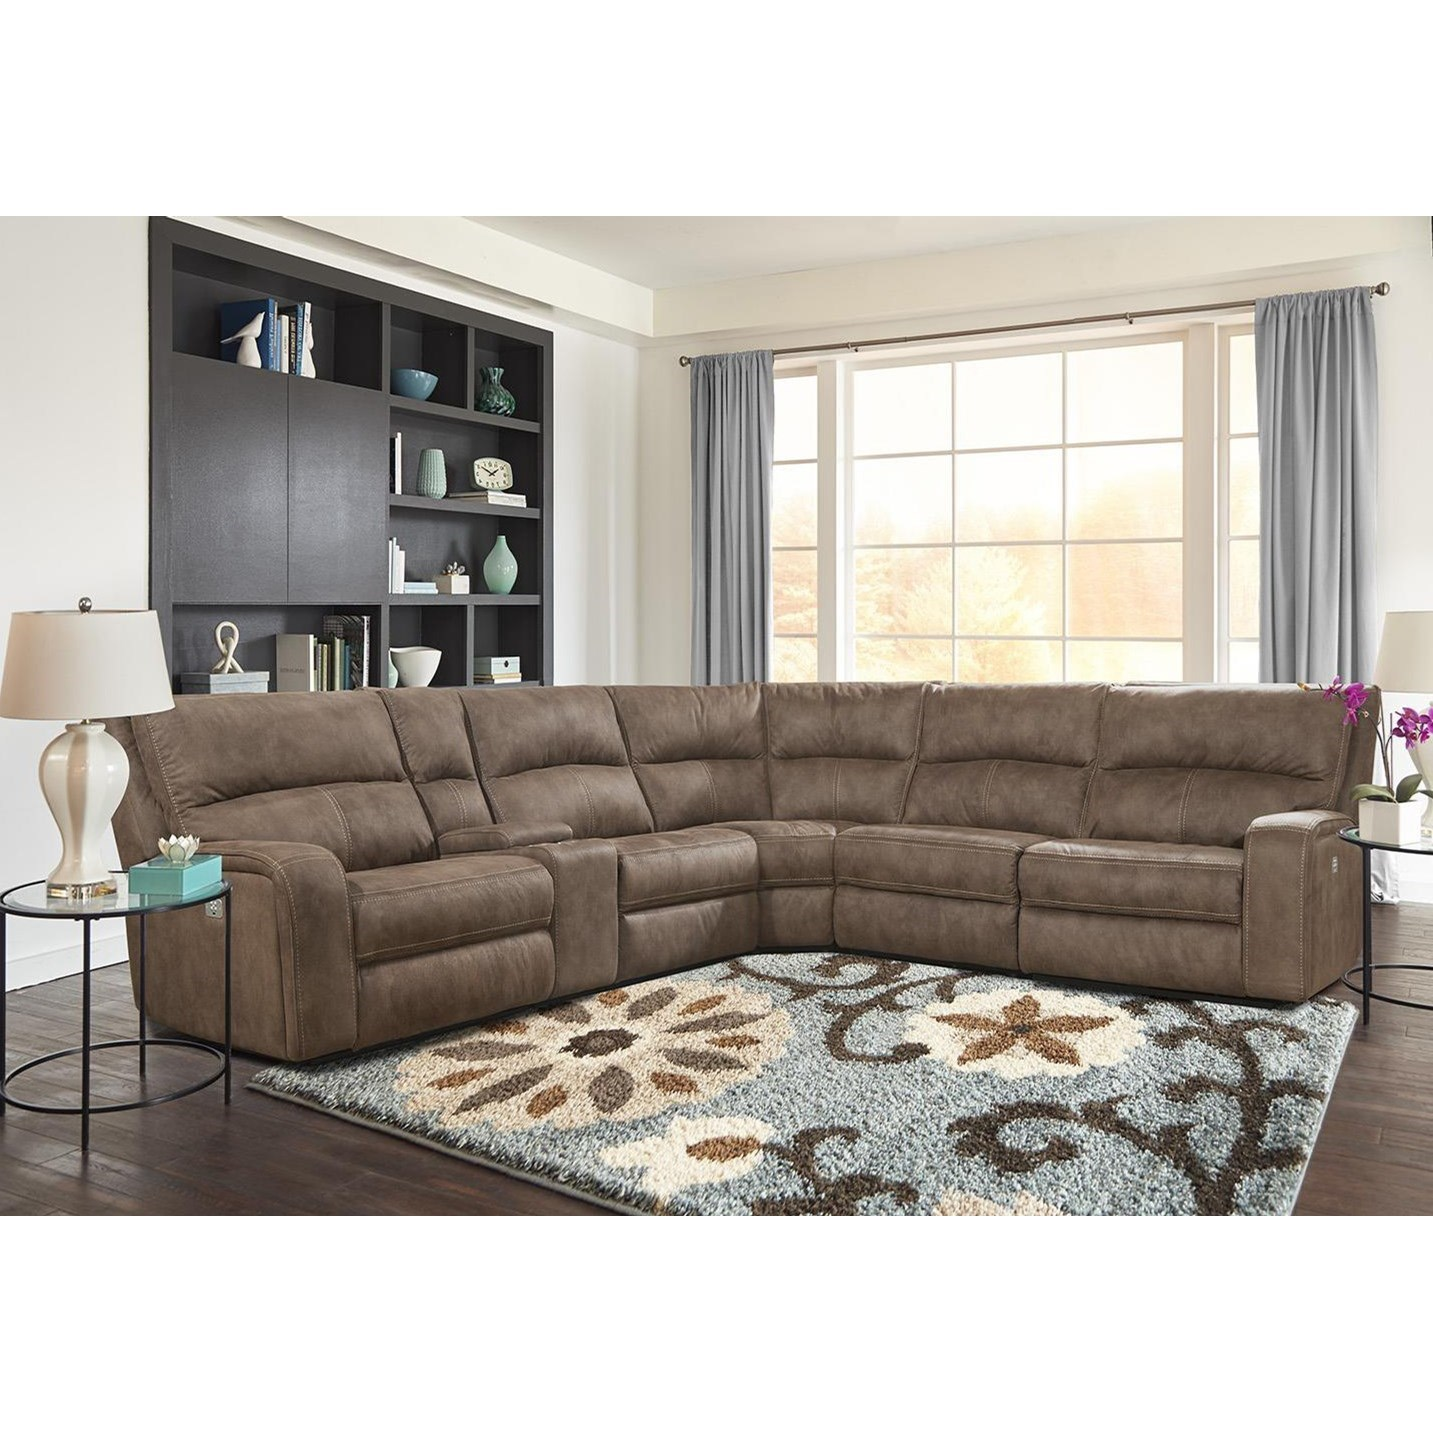 Exceptionnel Parker Living Polaris Kahlua Power Reclining Sectional With Power Headrests  And USB Charging Ports